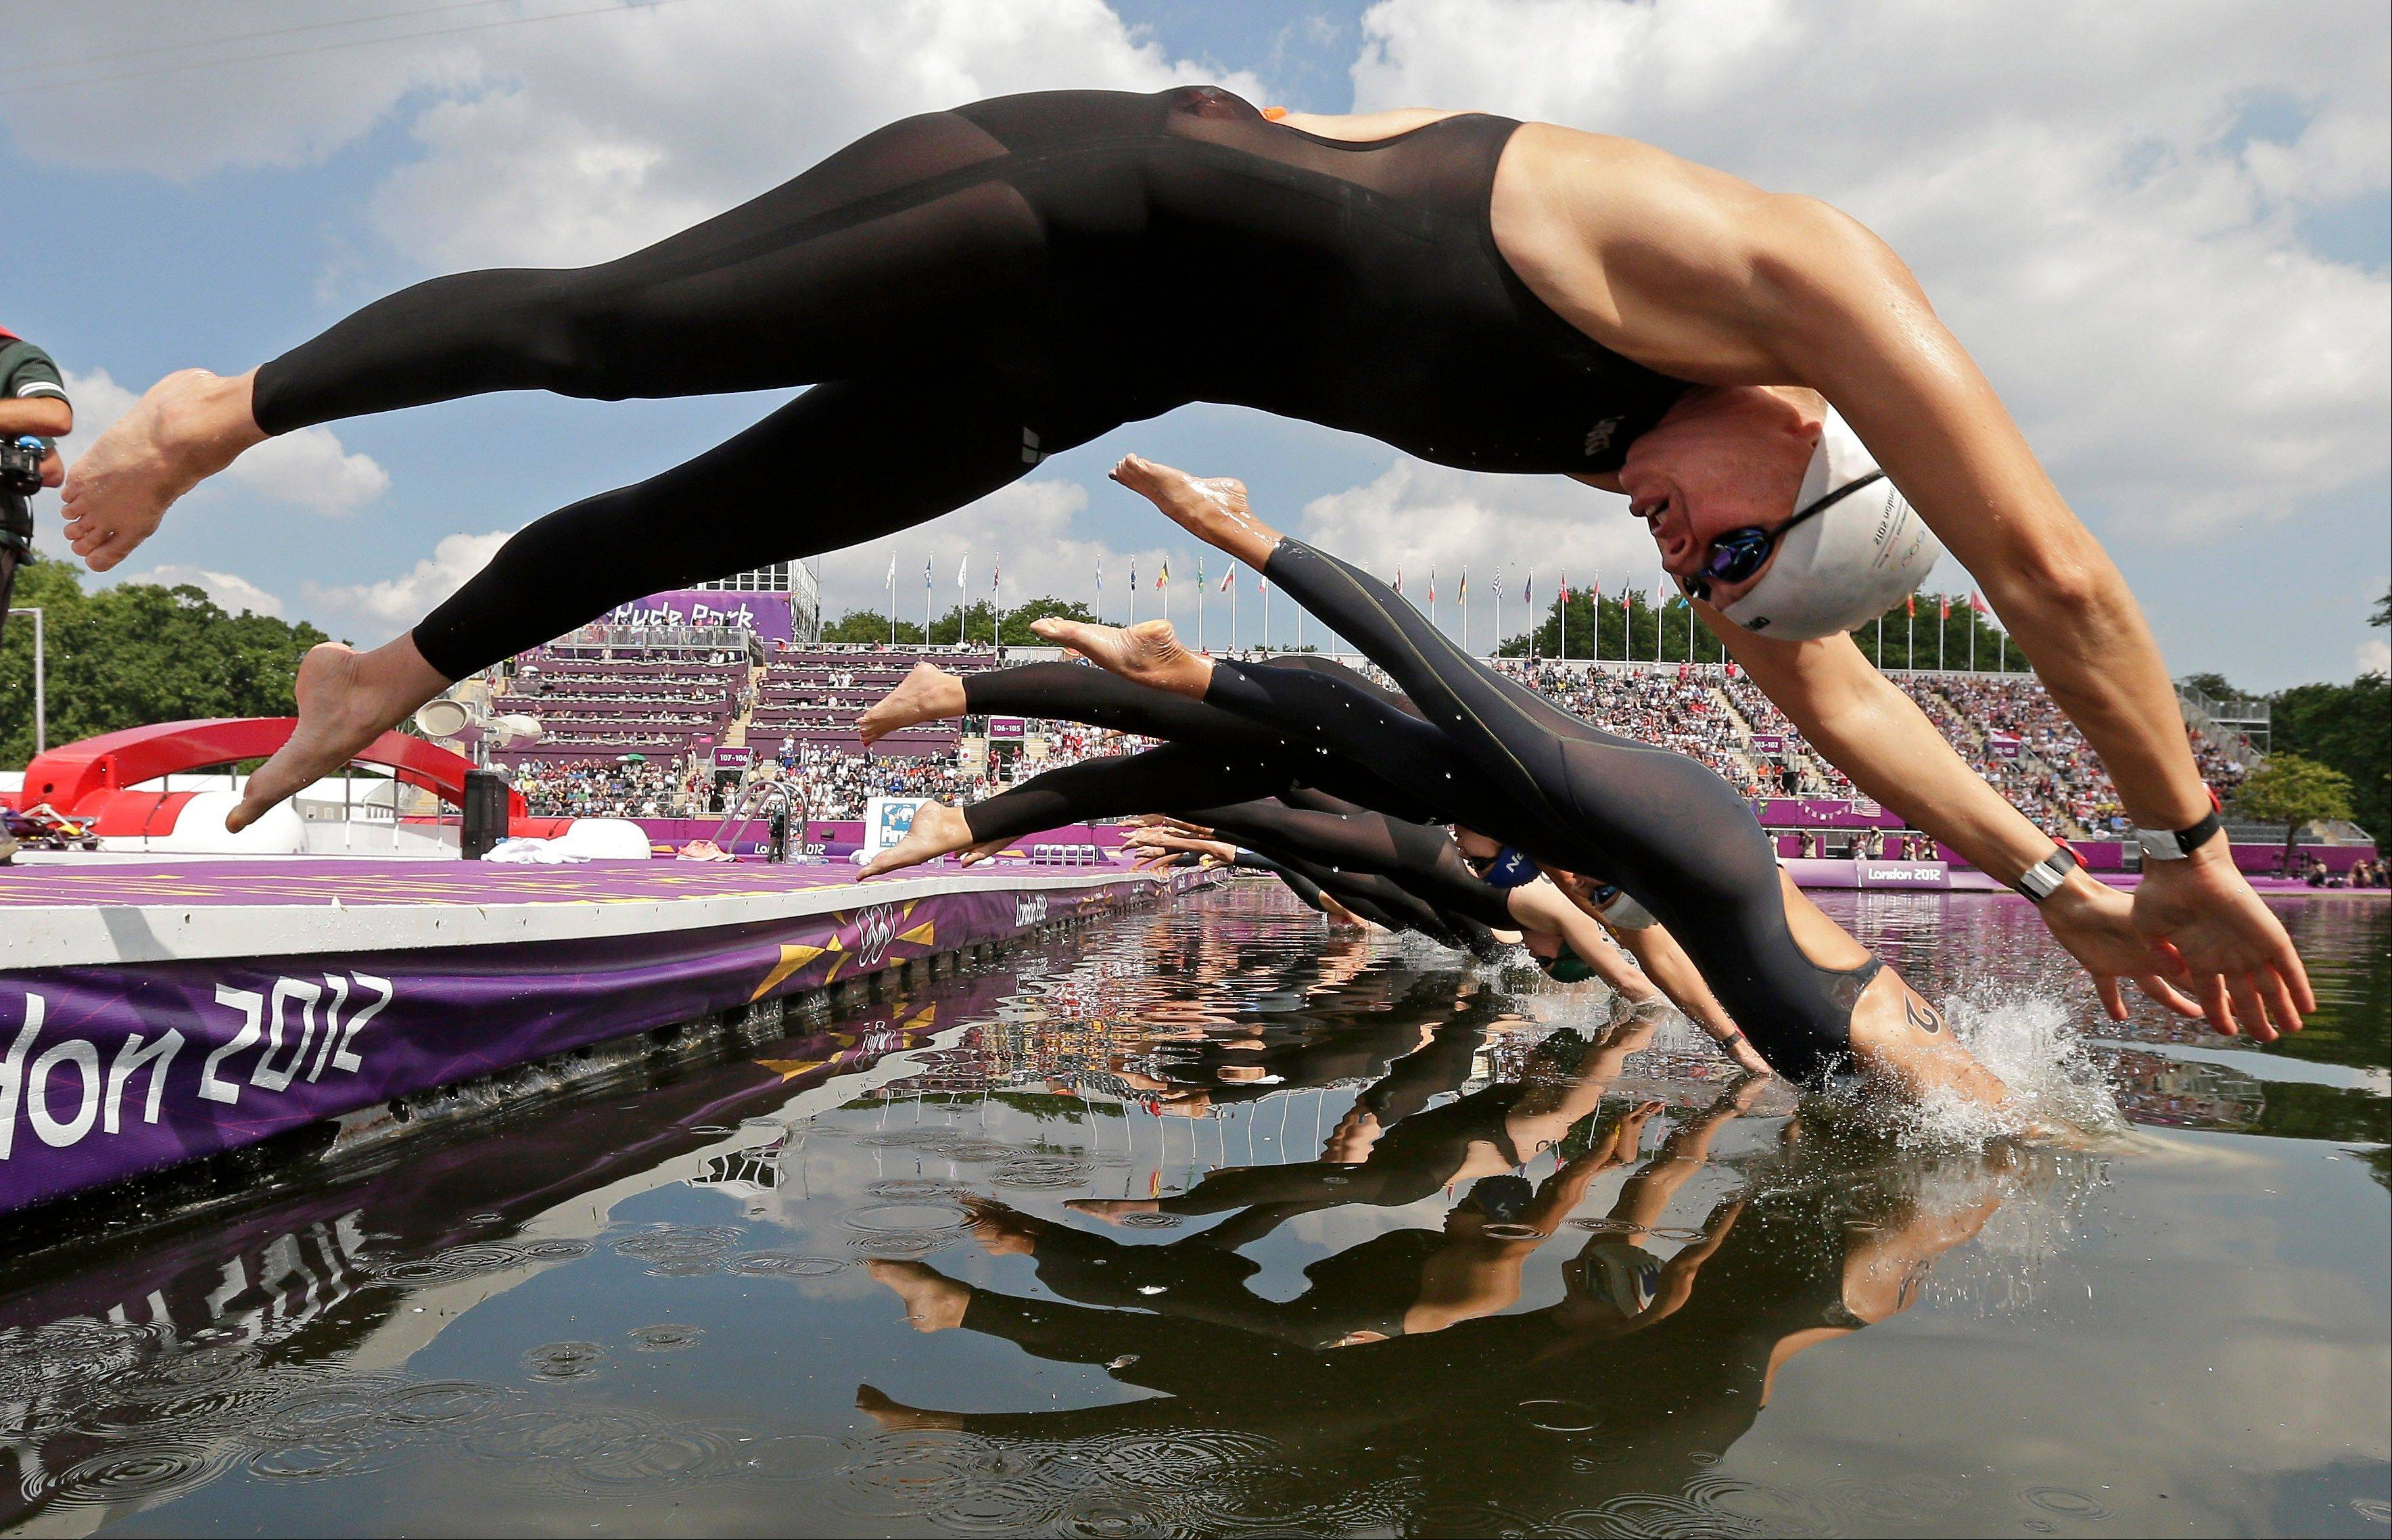 Germany's Angela Maurer, front, and other athletes dive into the Serpentine at Hyde Park as they compete in the women's marathon swimming competition at the 2012 Summer Olympics Thursday, Aug. 9, 2012, in London.